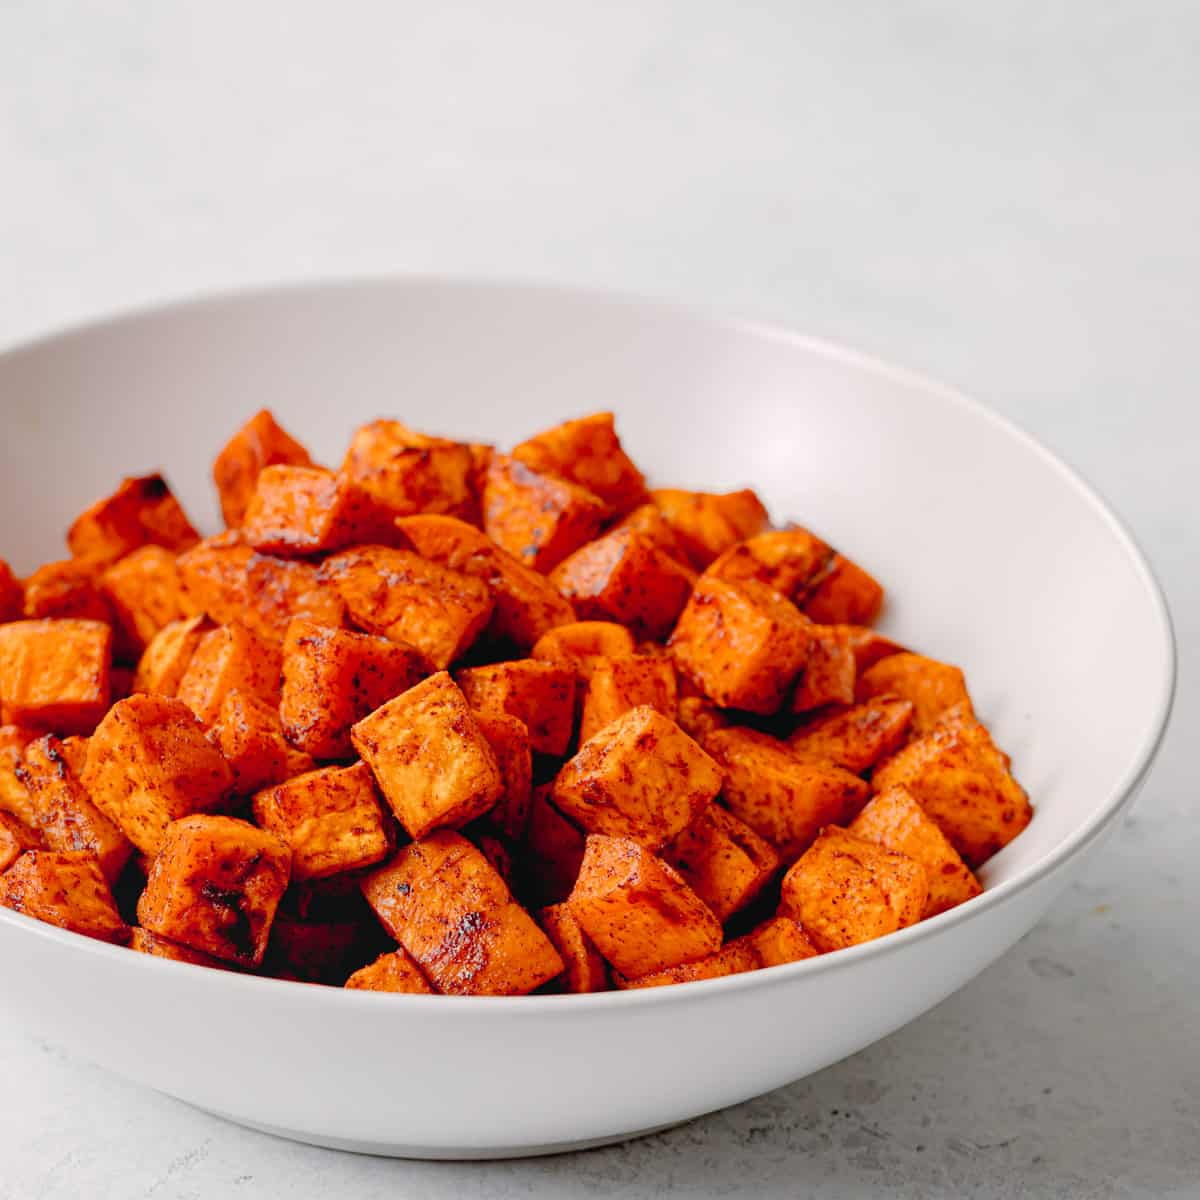 Sweet Potatoes with Maple Syrup